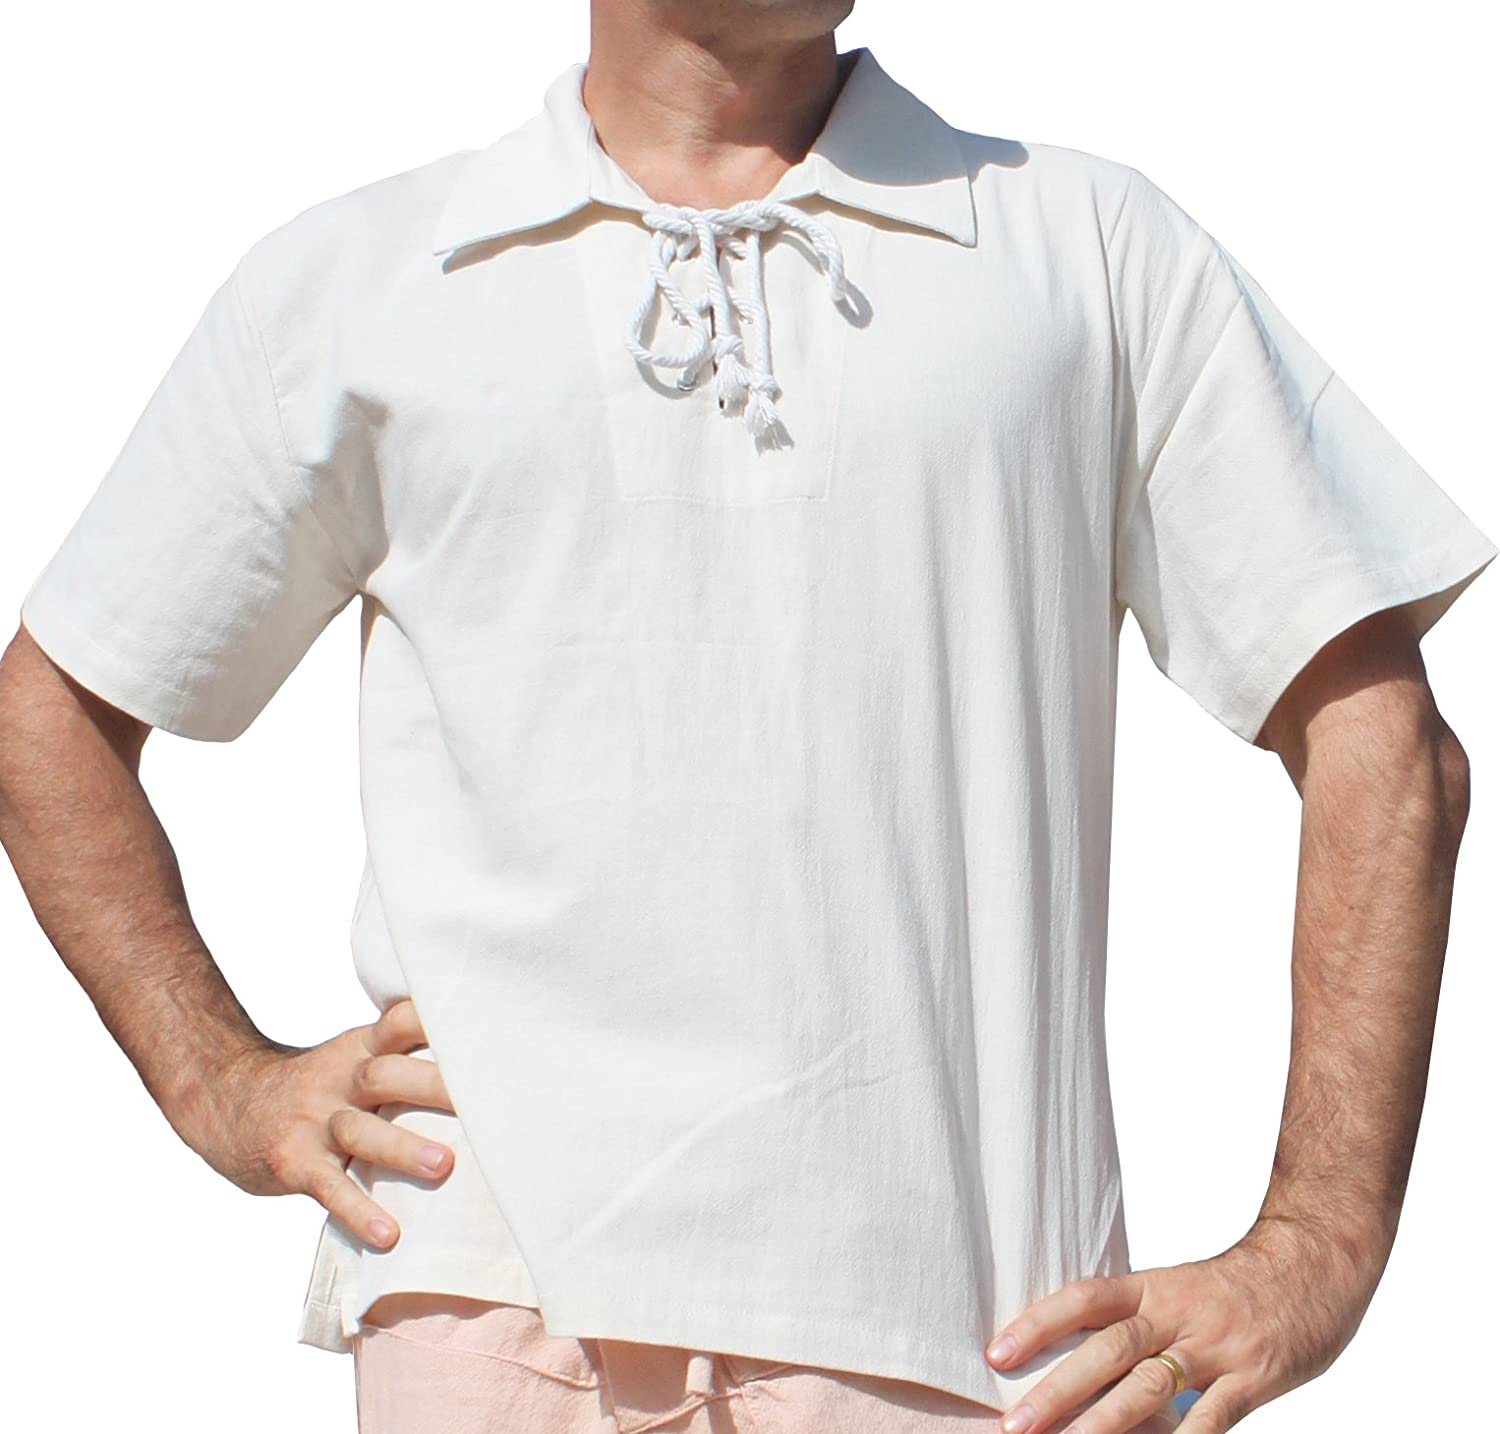 1960s – 70s Mens Shirts- Disco Shirts, Hippie Shirts RaanPahMuang Brand Light Cotton Wide Collar Medieval Renaissance Shirt Short Sleeve $23.79 AT vintagedancer.com